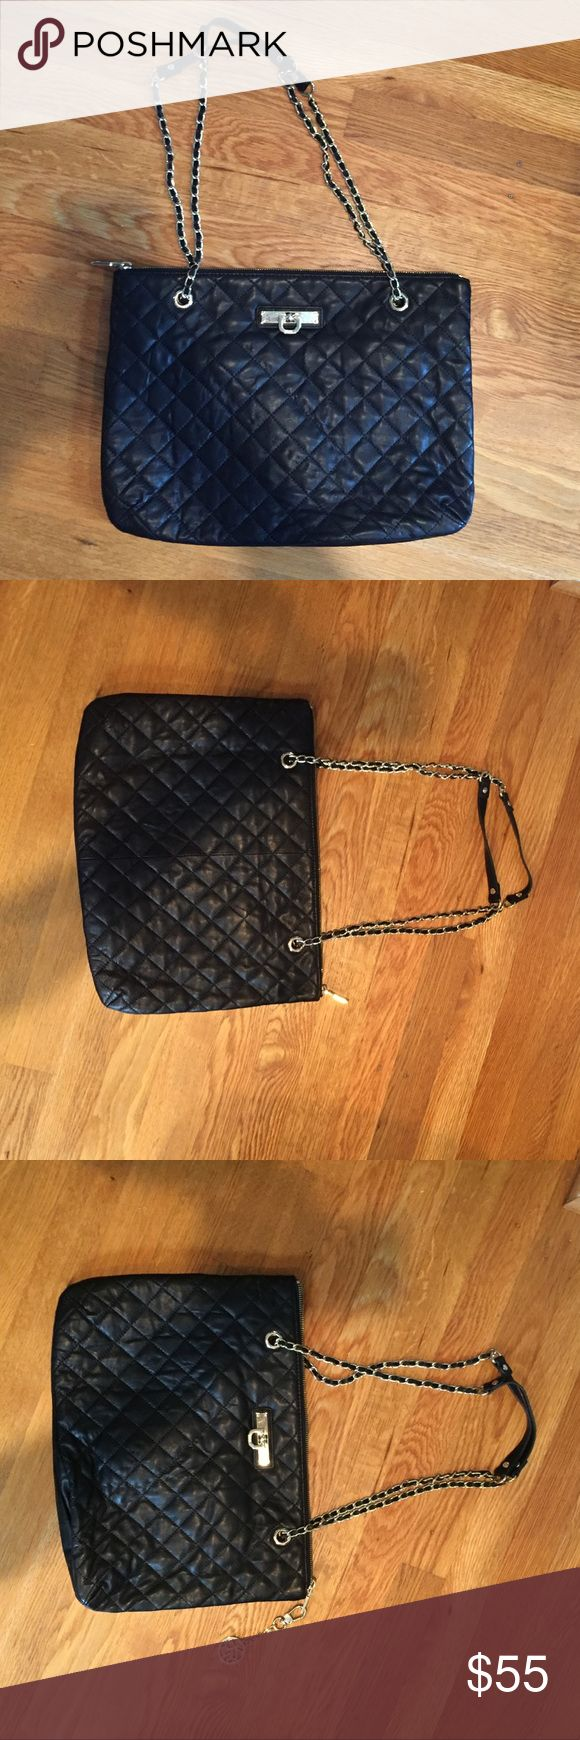 DKNY Black Quilted Shoulder Bag Excellent condition black quilted with gold hardware zip closure bag. Can be worn double strap over the shoulder or you can use a single strap and wear It cross body. Comes with detachable DKNY chain on zipper. Dkny Bags Shoulder Bags